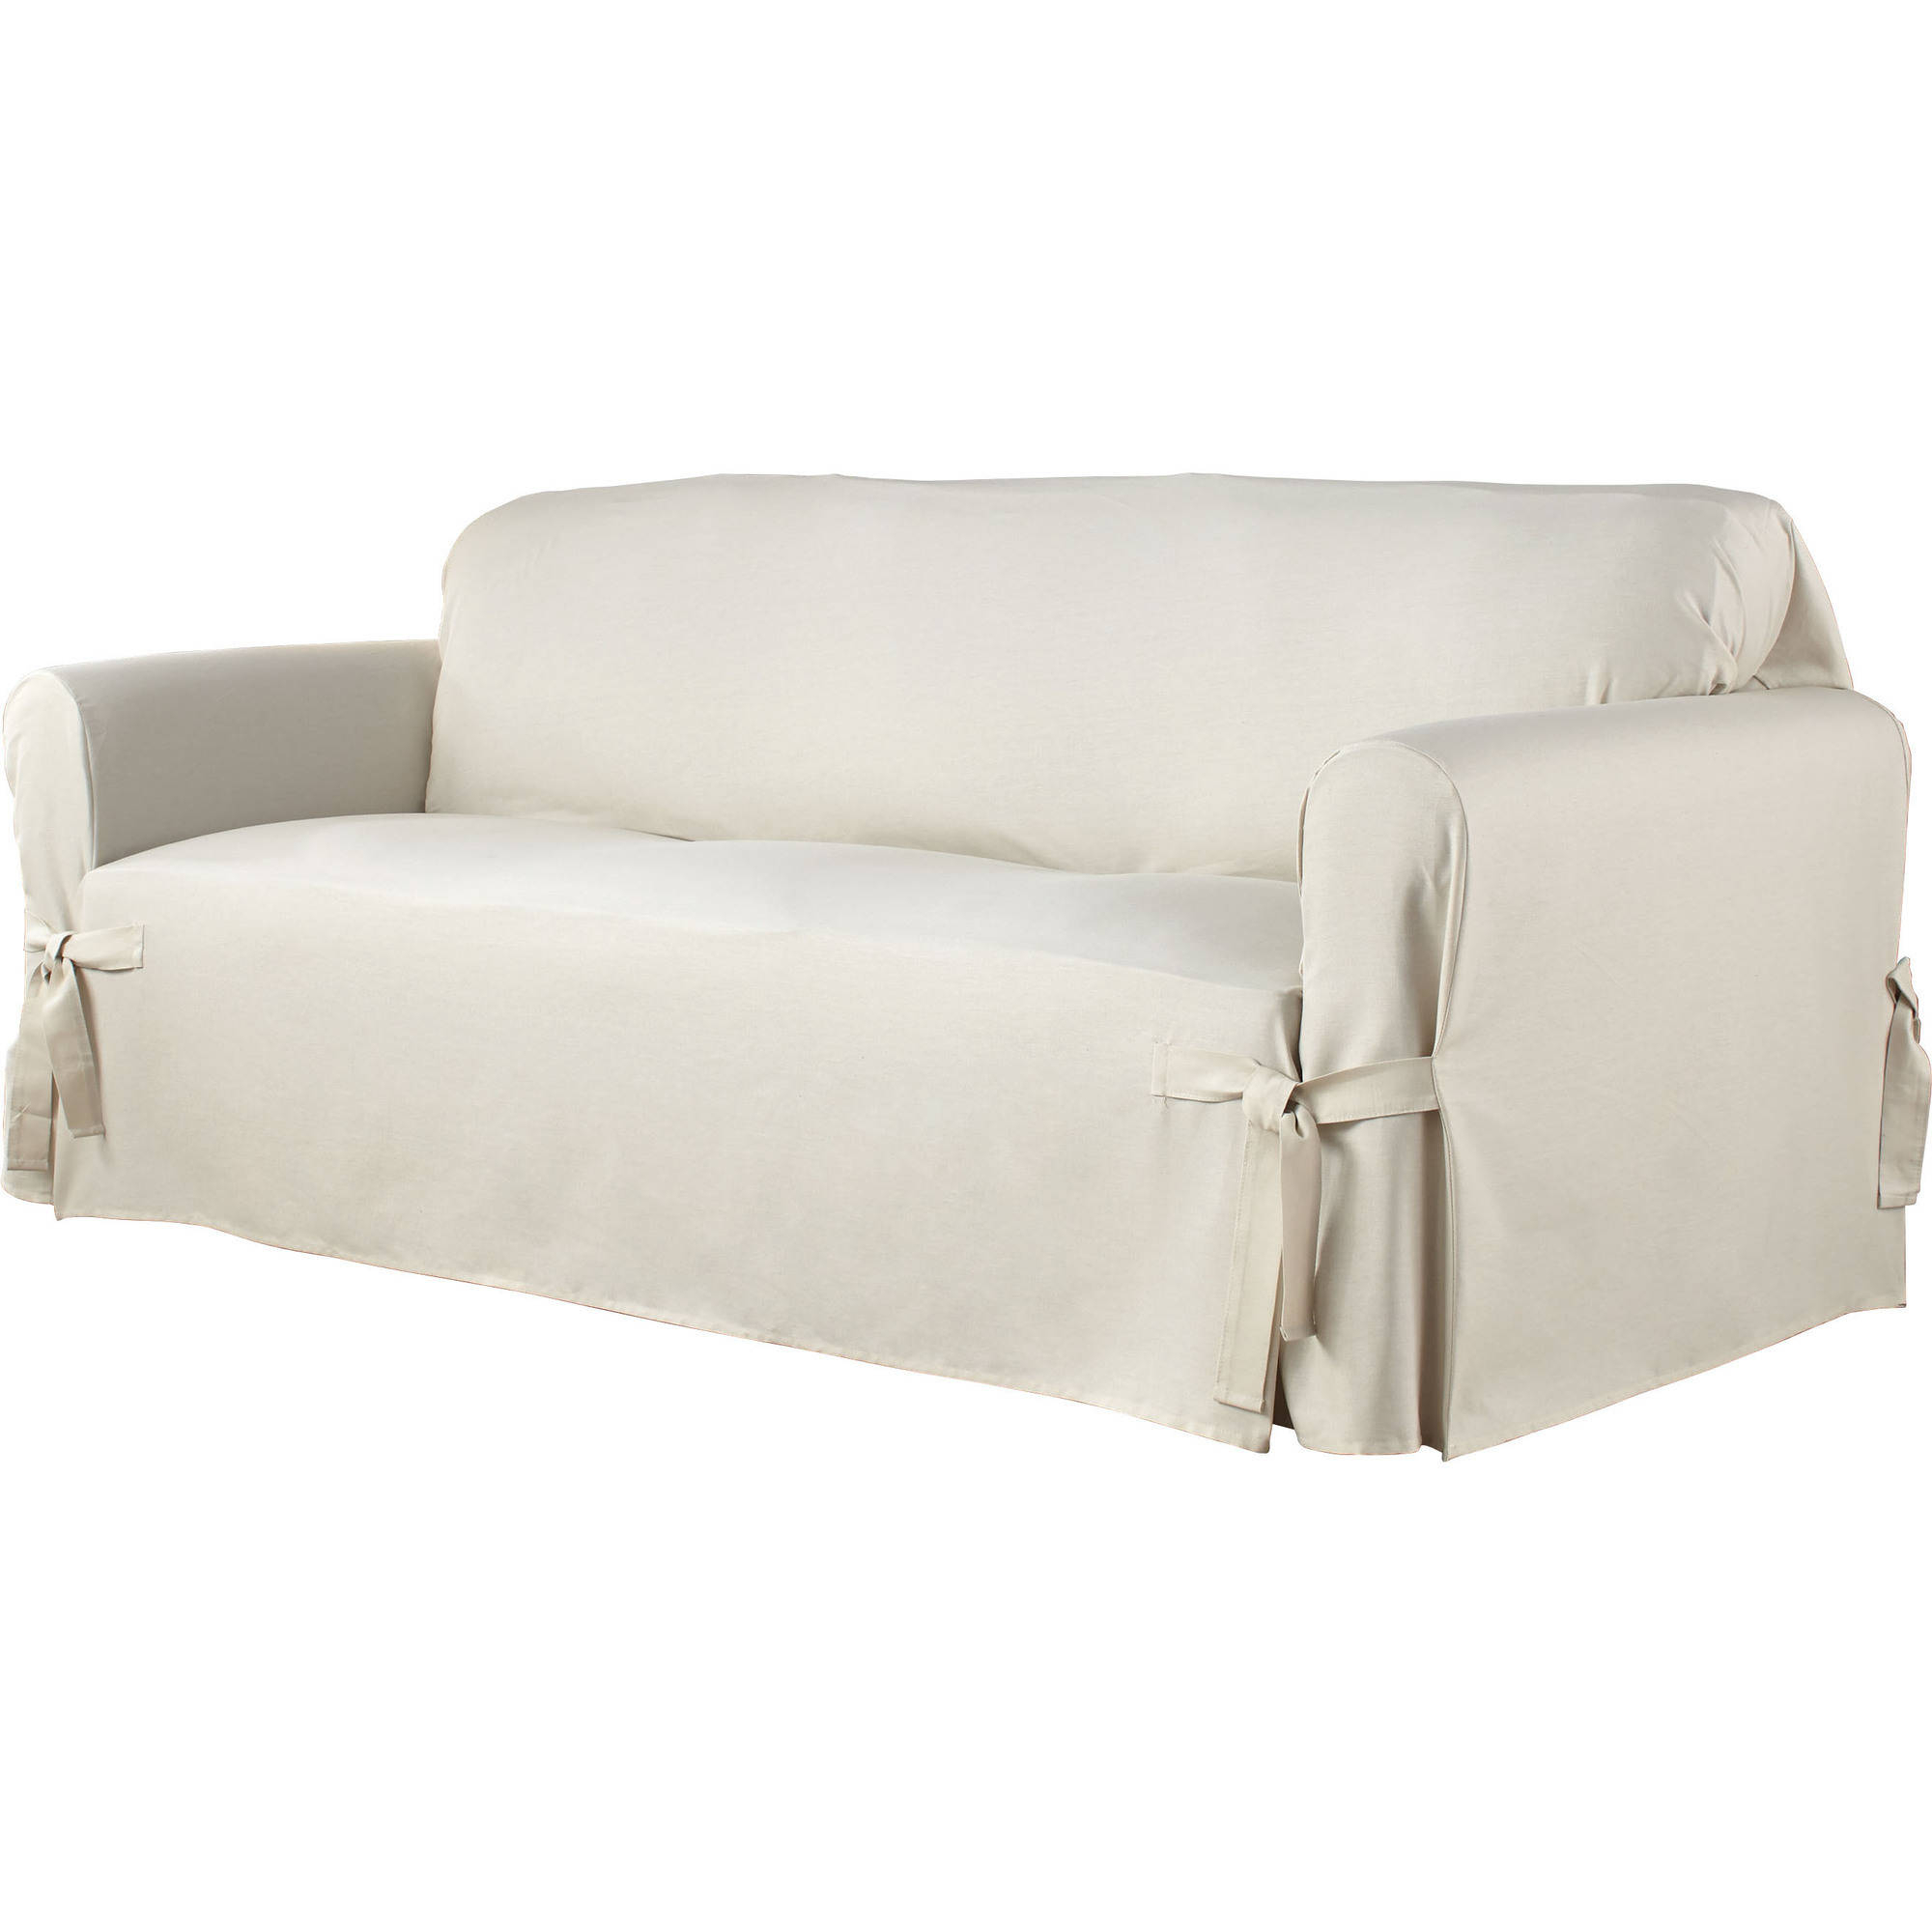 Famous Serta Relaxed Fit Duck Furniture Slipcover, Sofa 1 Piece Box Cushion Pertaining To Slipcovers For Chairs And Sofas (View 7 of 20)